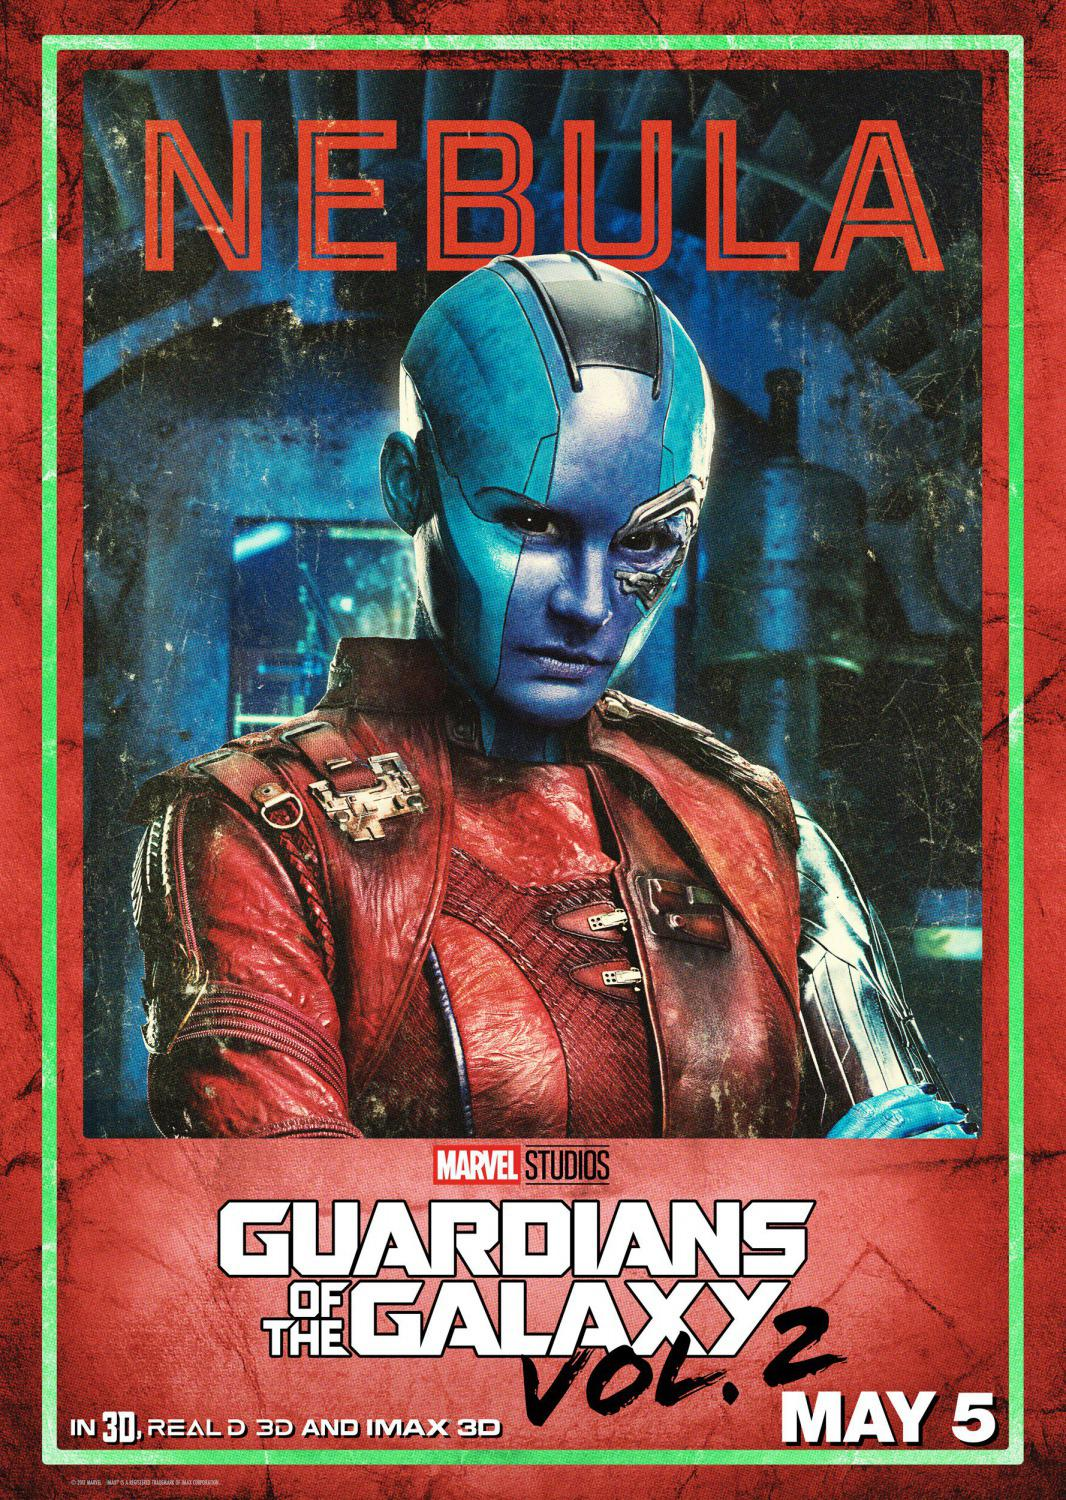 Guardians of the Galaxy vol two - Guardiani della Galassia 2 - Nebula